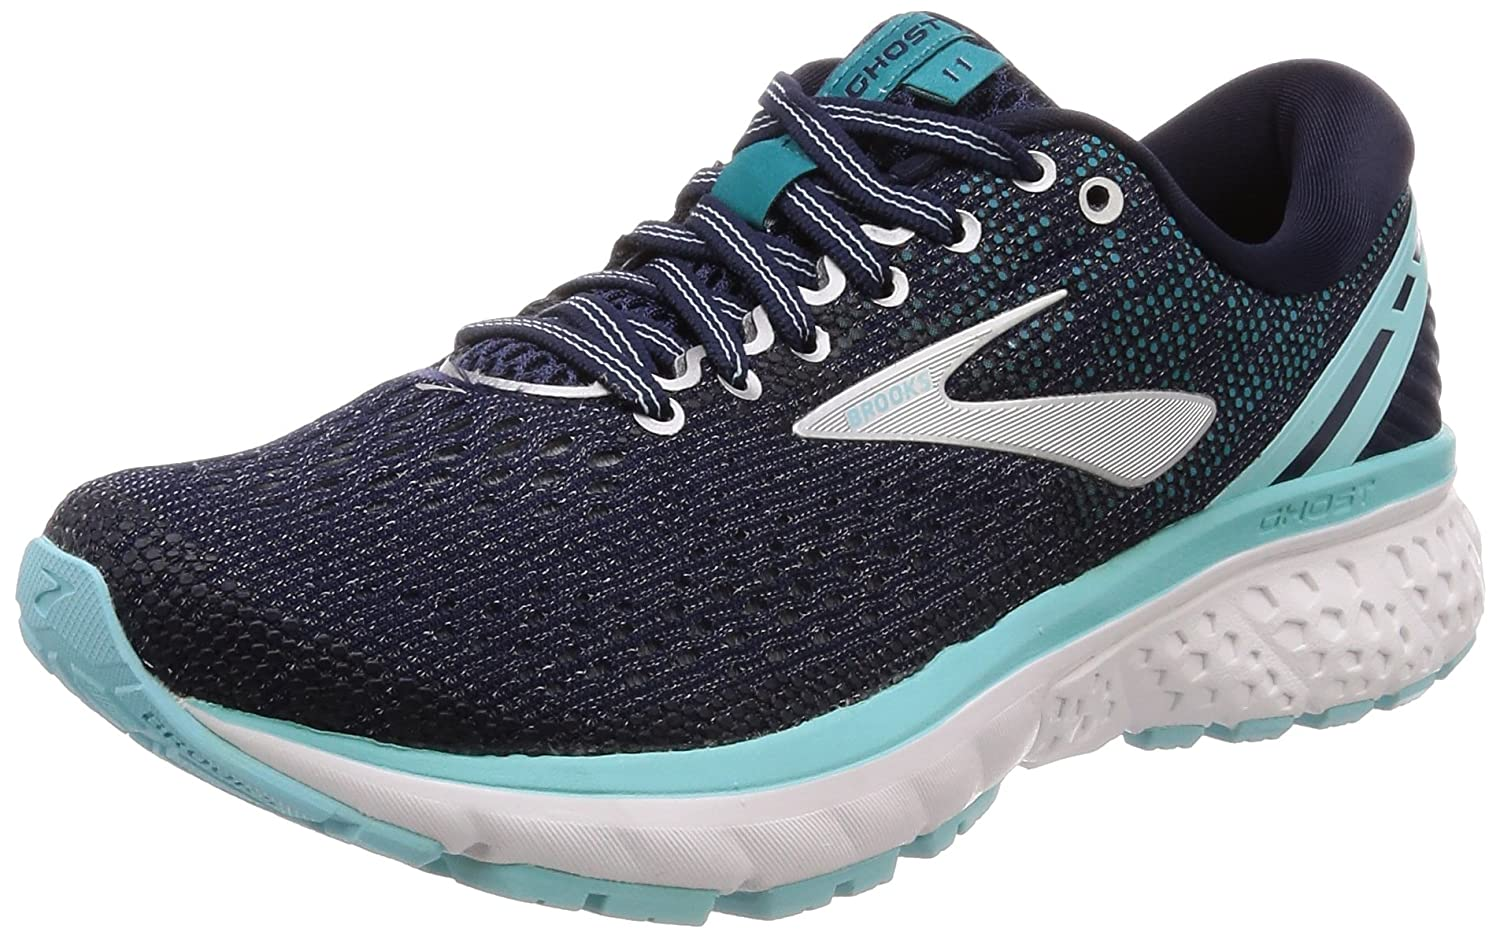 Brooks Womens Ghost 11 Running Shoe B078BS62YL 6 W US|Navy/Gray/Bue